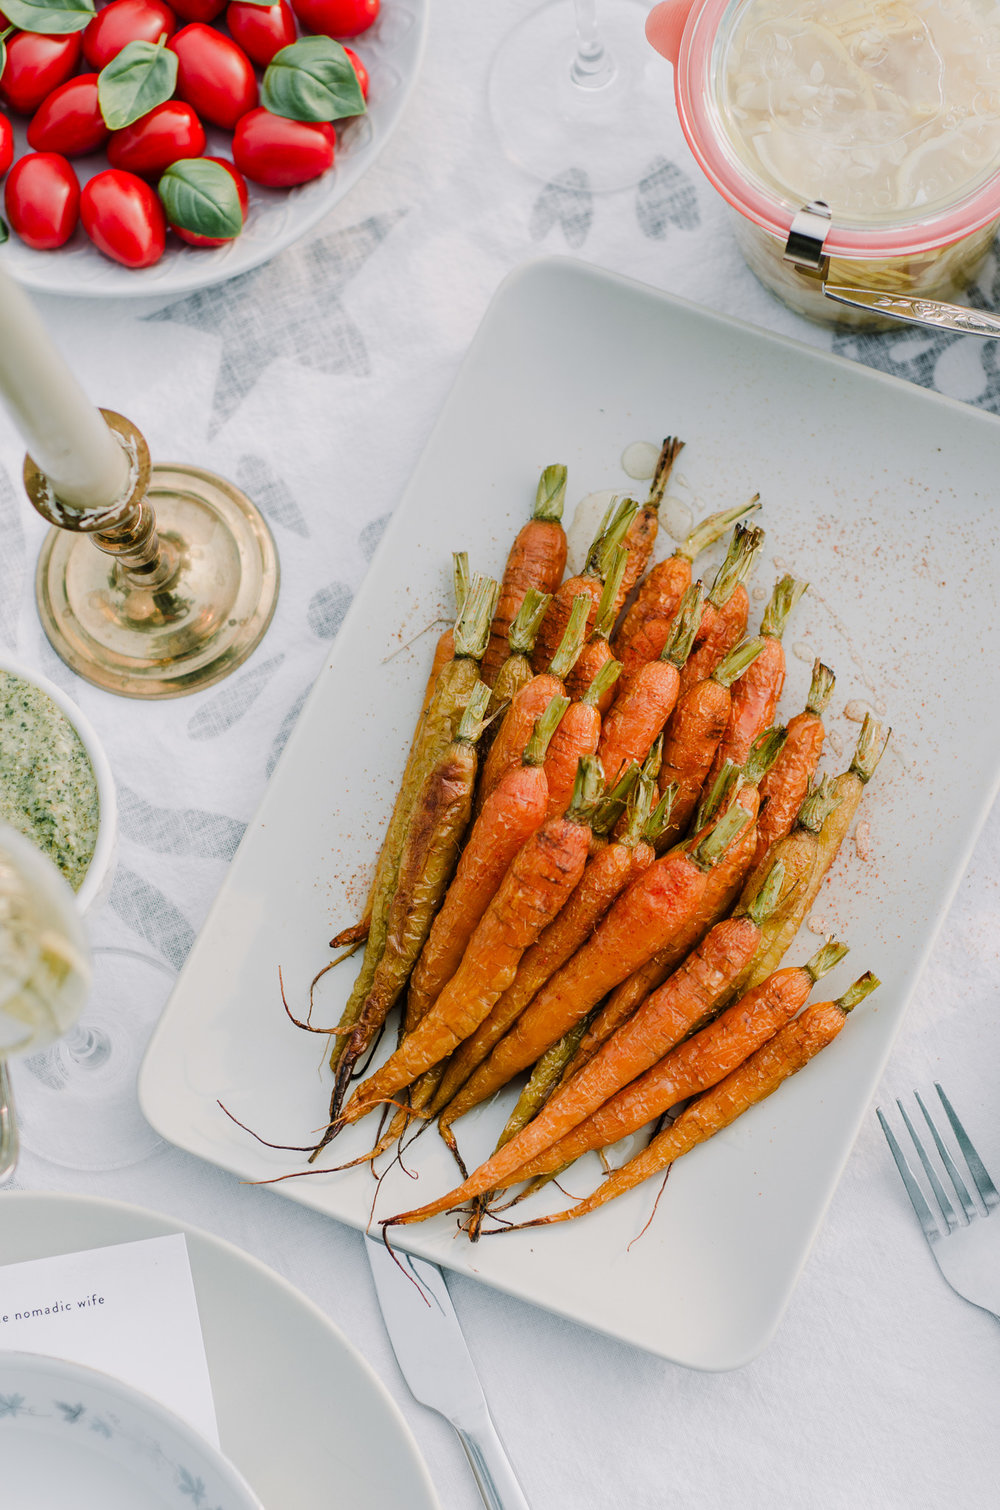 easy roasted carrots with cayenne and honey recipe by the nomadic wife